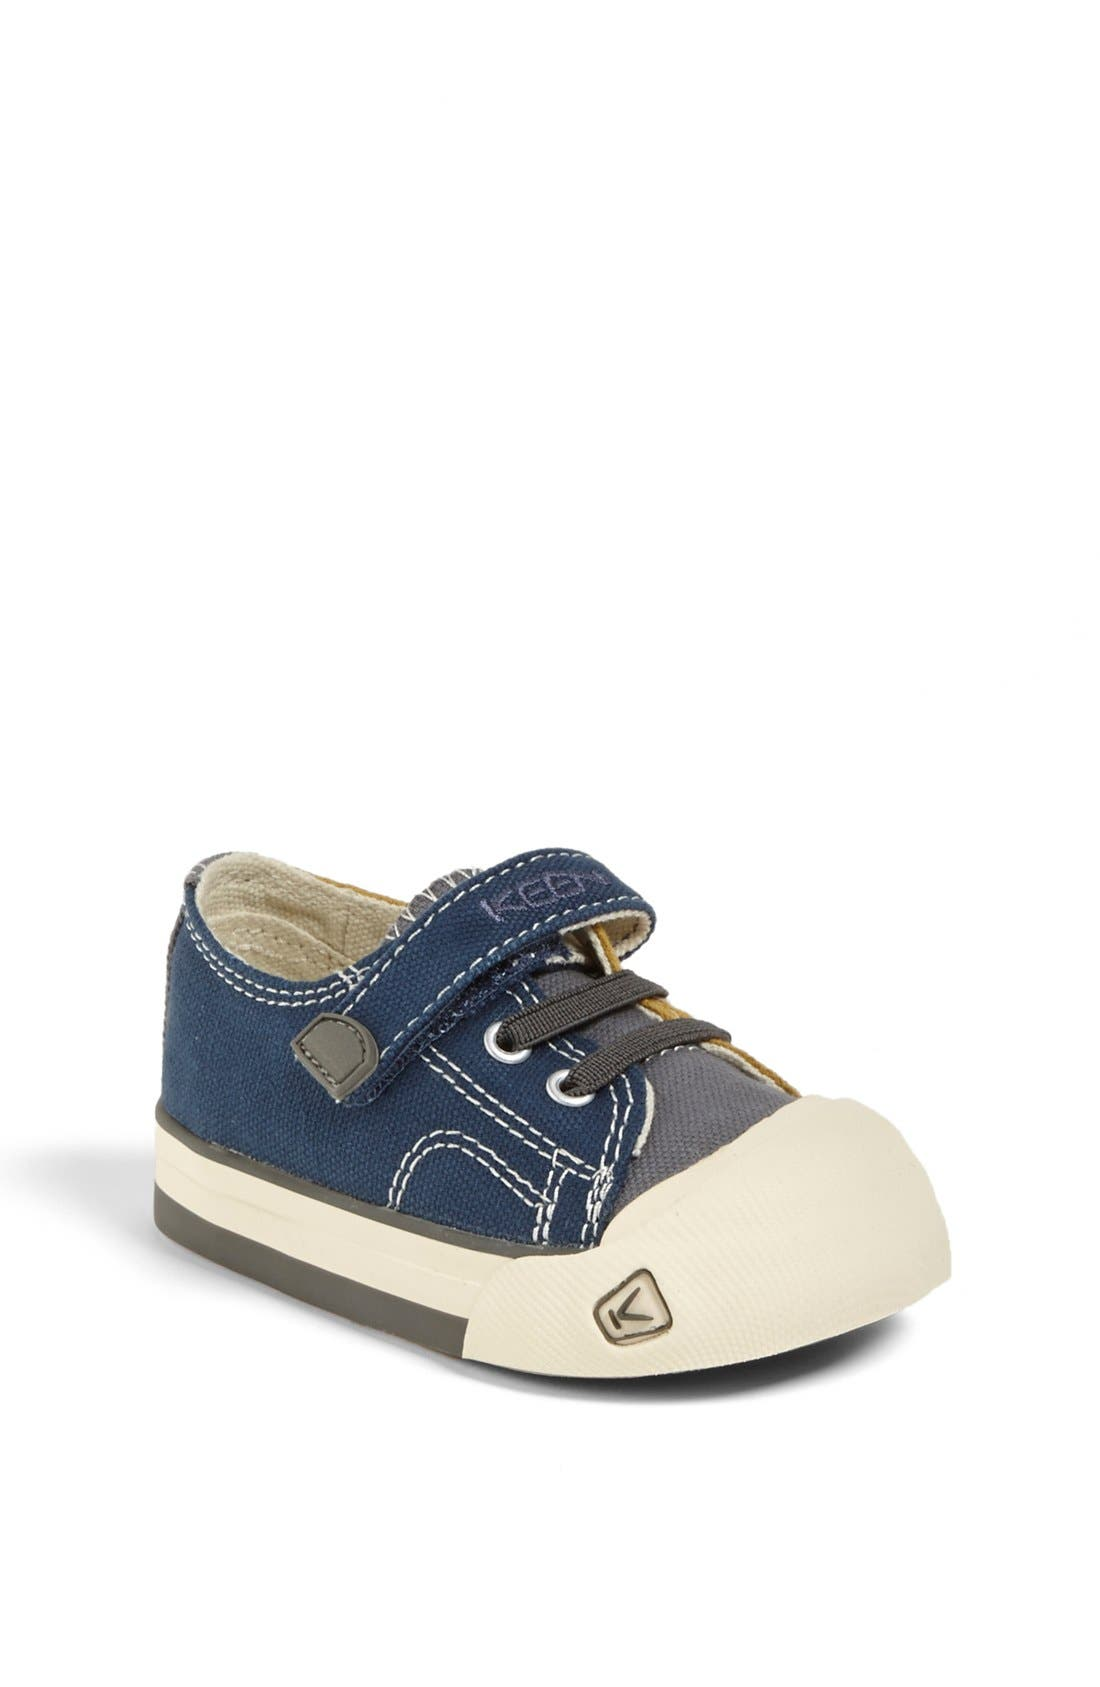 Alternate Image 1 Selected - Keen 'Coronado' Sneaker (Baby & Walker)